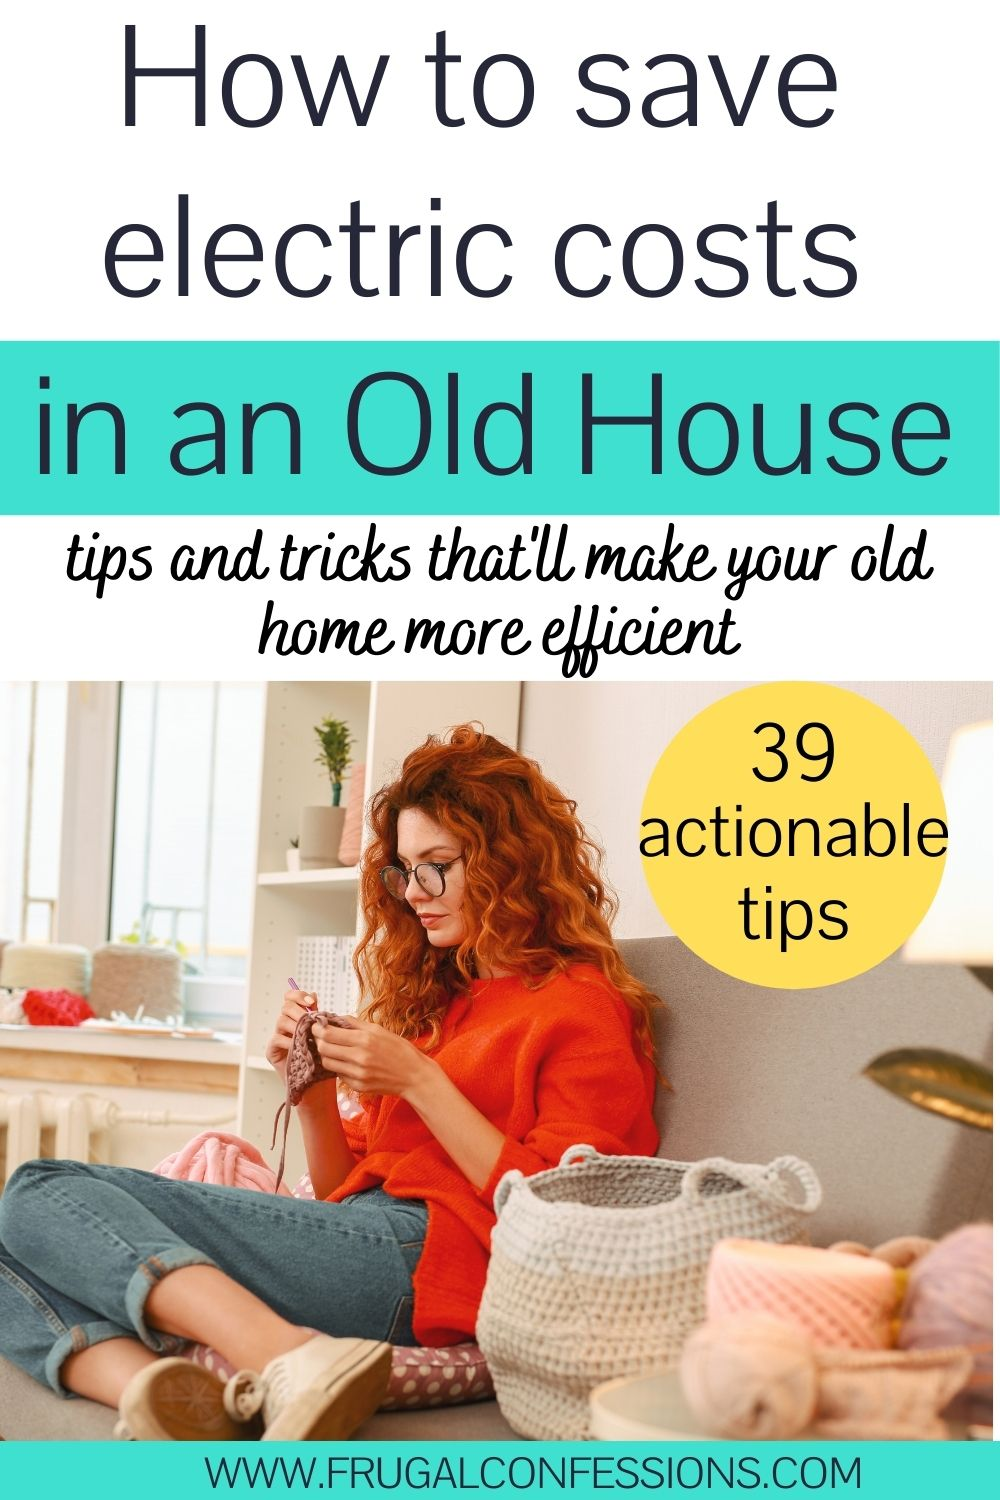 """young woman in red sweater knitting on couch next to radiator, text overlay """"how to save on electric costs in an old house - 39 actionable tips"""""""